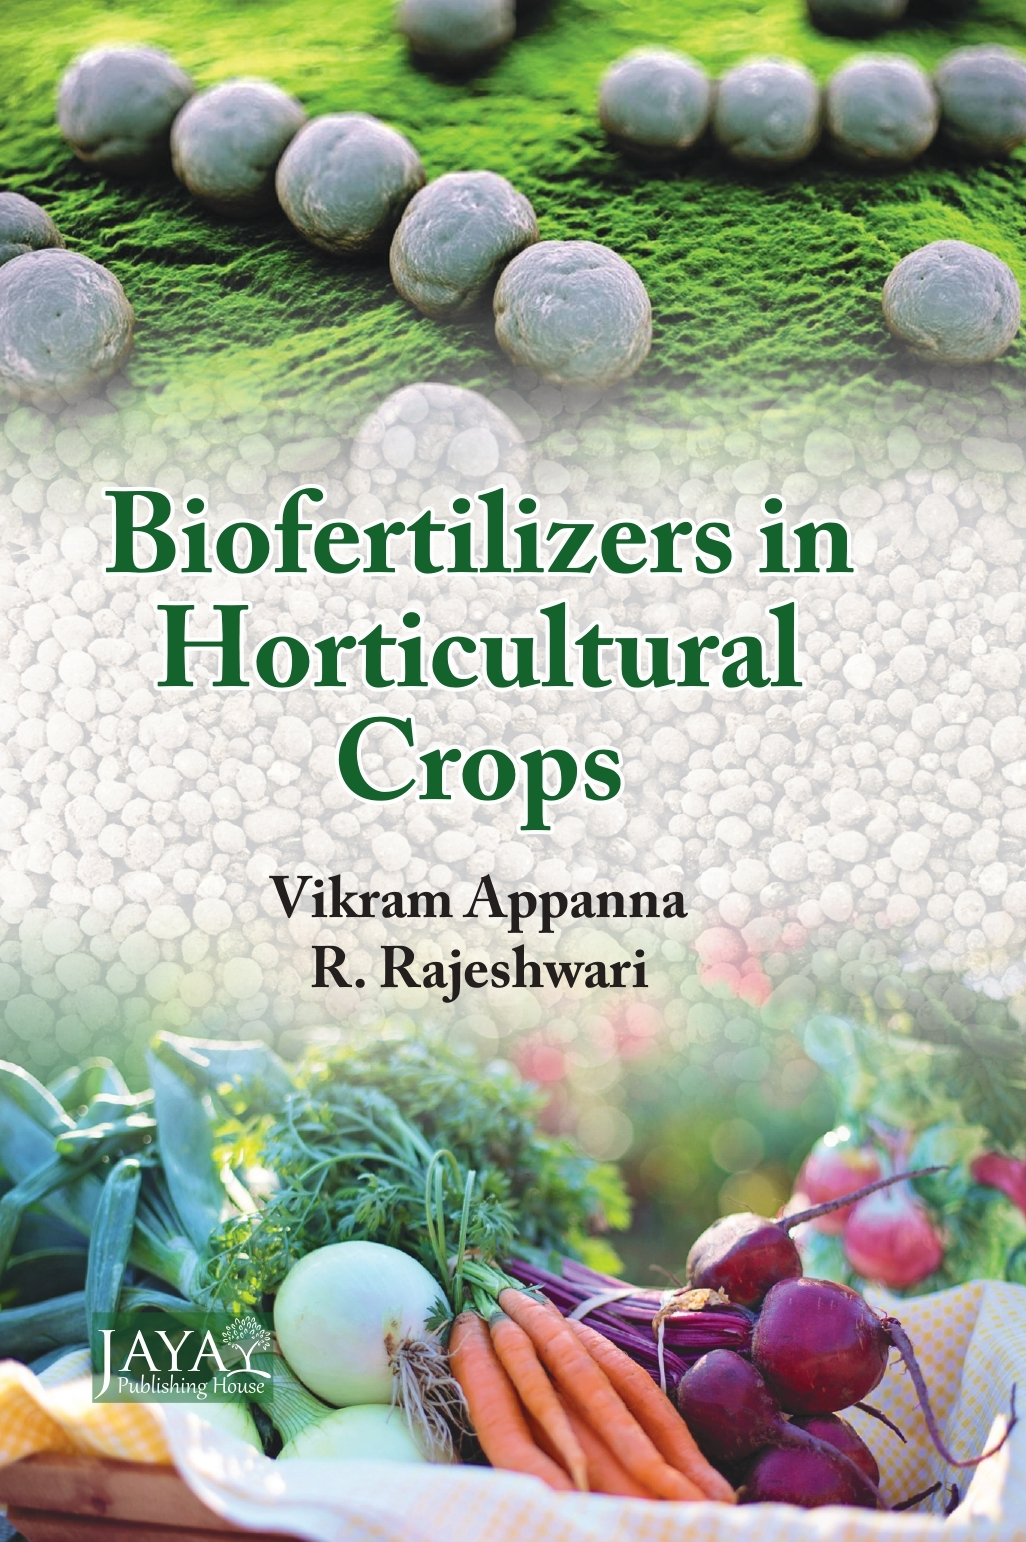 Biofertilizers in Horticulture crops